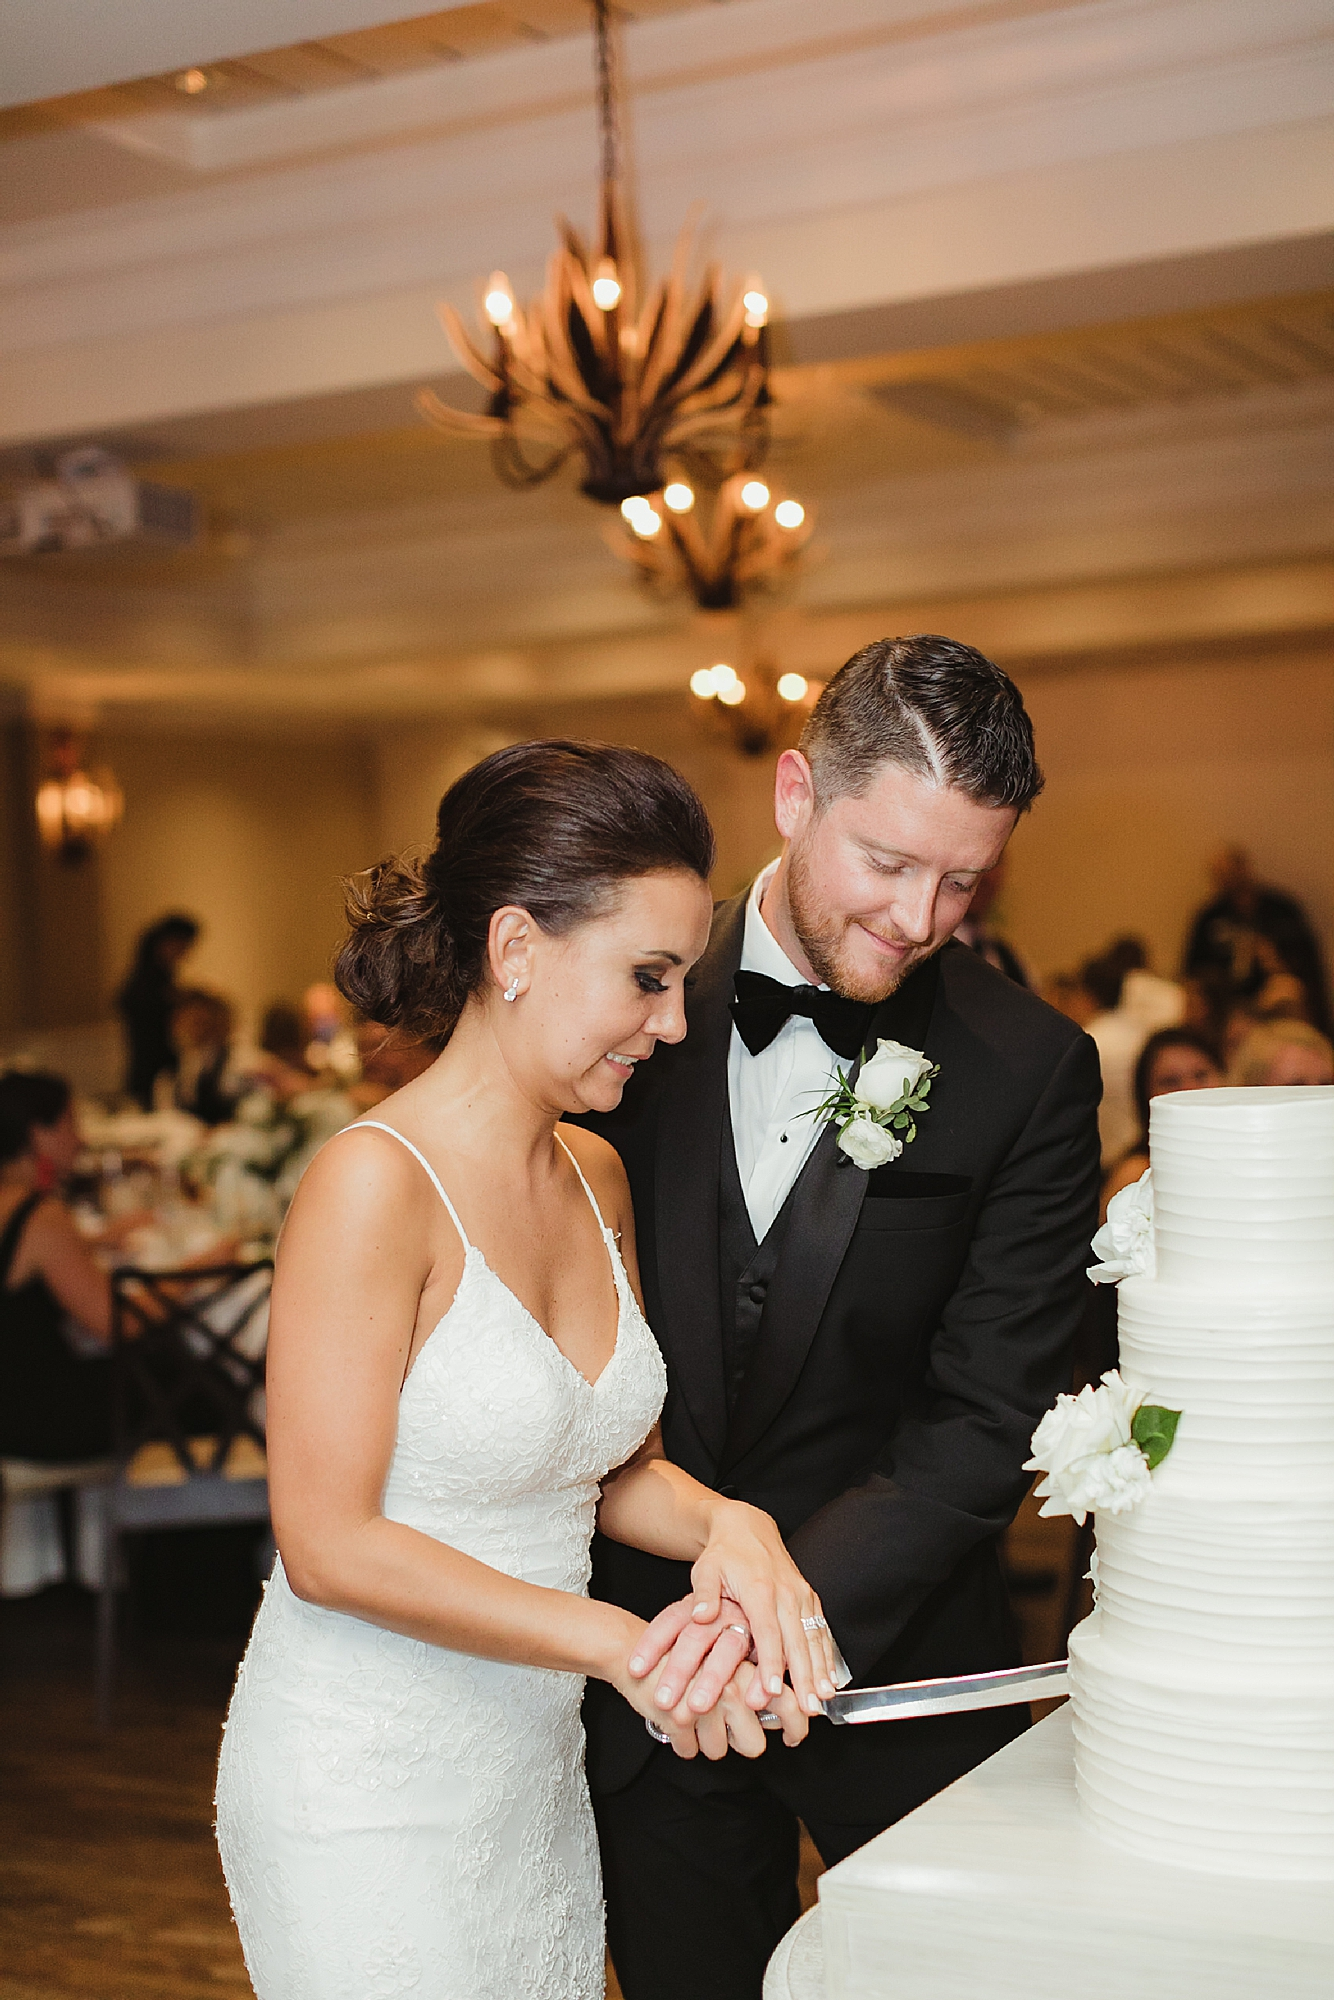 Candid and Stylish South Jersey Wedding Photography by Magdalena Studios 0067